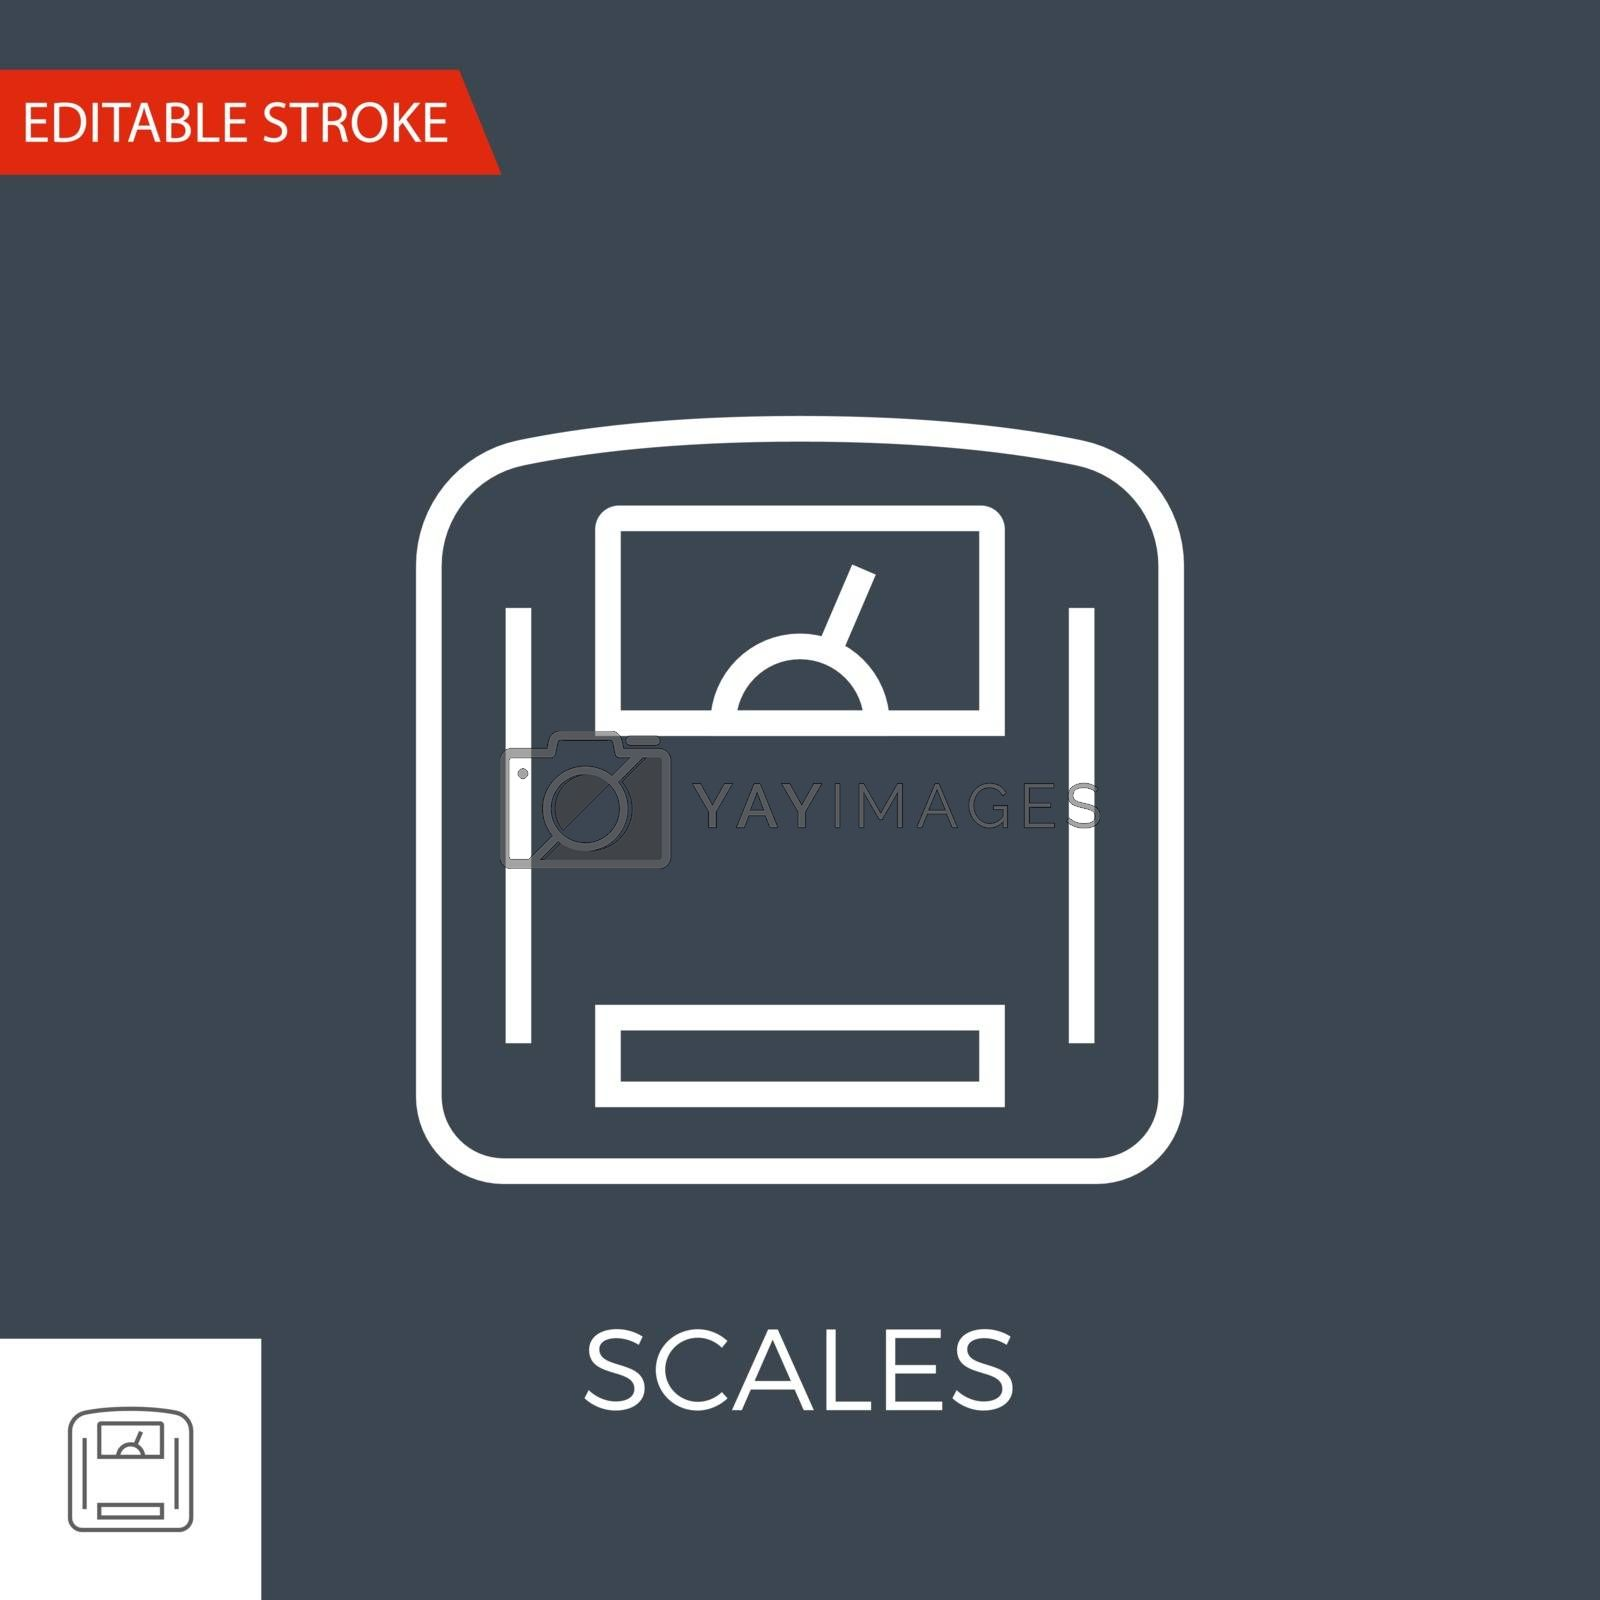 Scales Thin Line Vector Icon. Flat Icon Isolated on the Black Background. Editable Stroke EPS file. Vector illustration.